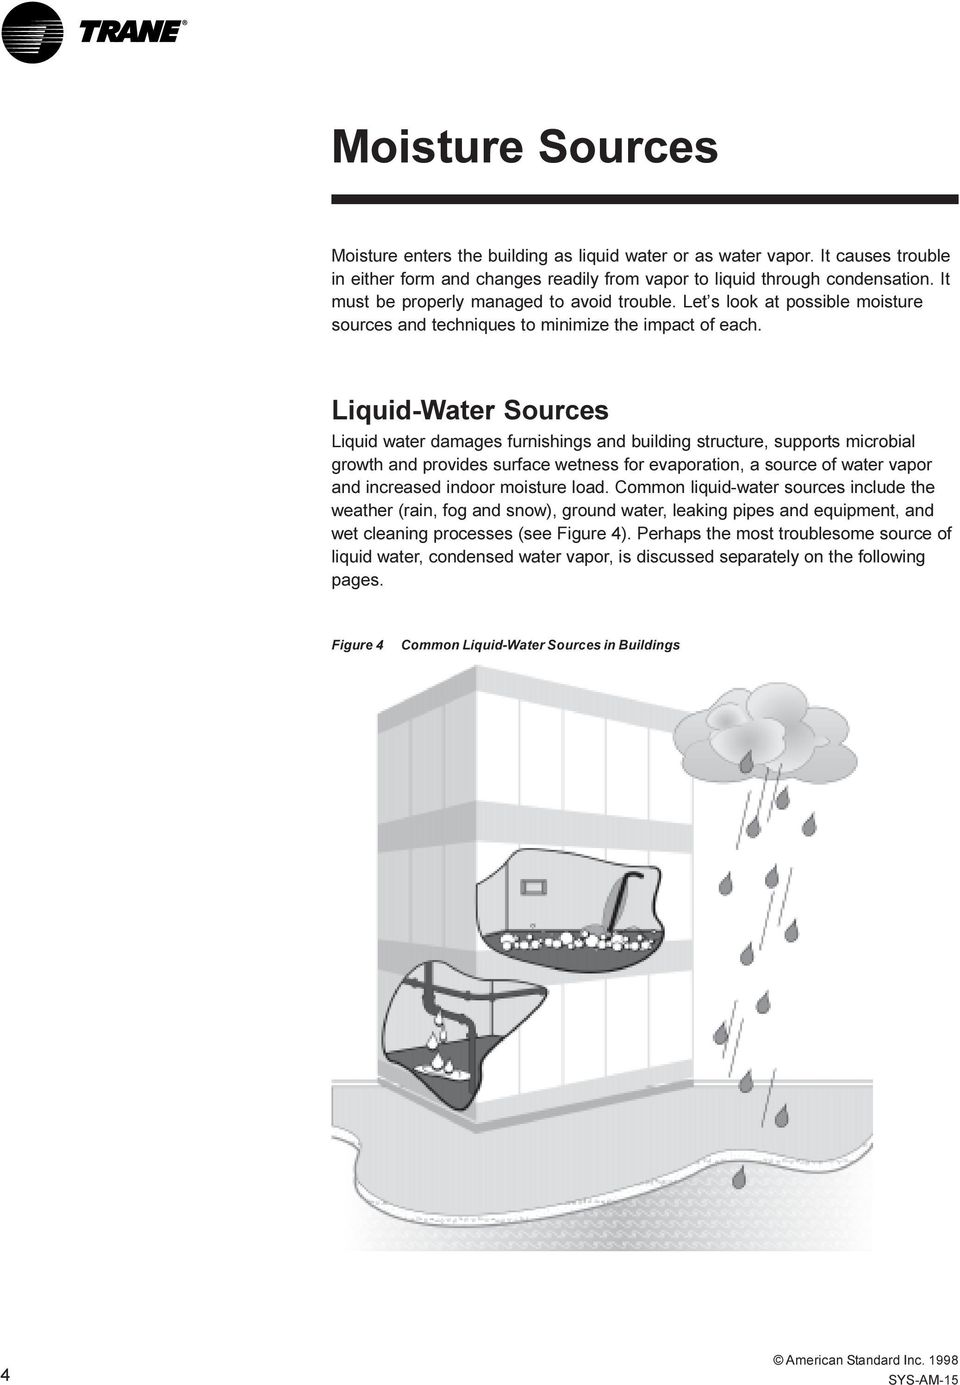 Liquid-Water Sources Liquid water damages furnishings and building structure, supports microbial growth and provides surface wetness for evaporation, a source of water vapor and increased indoor